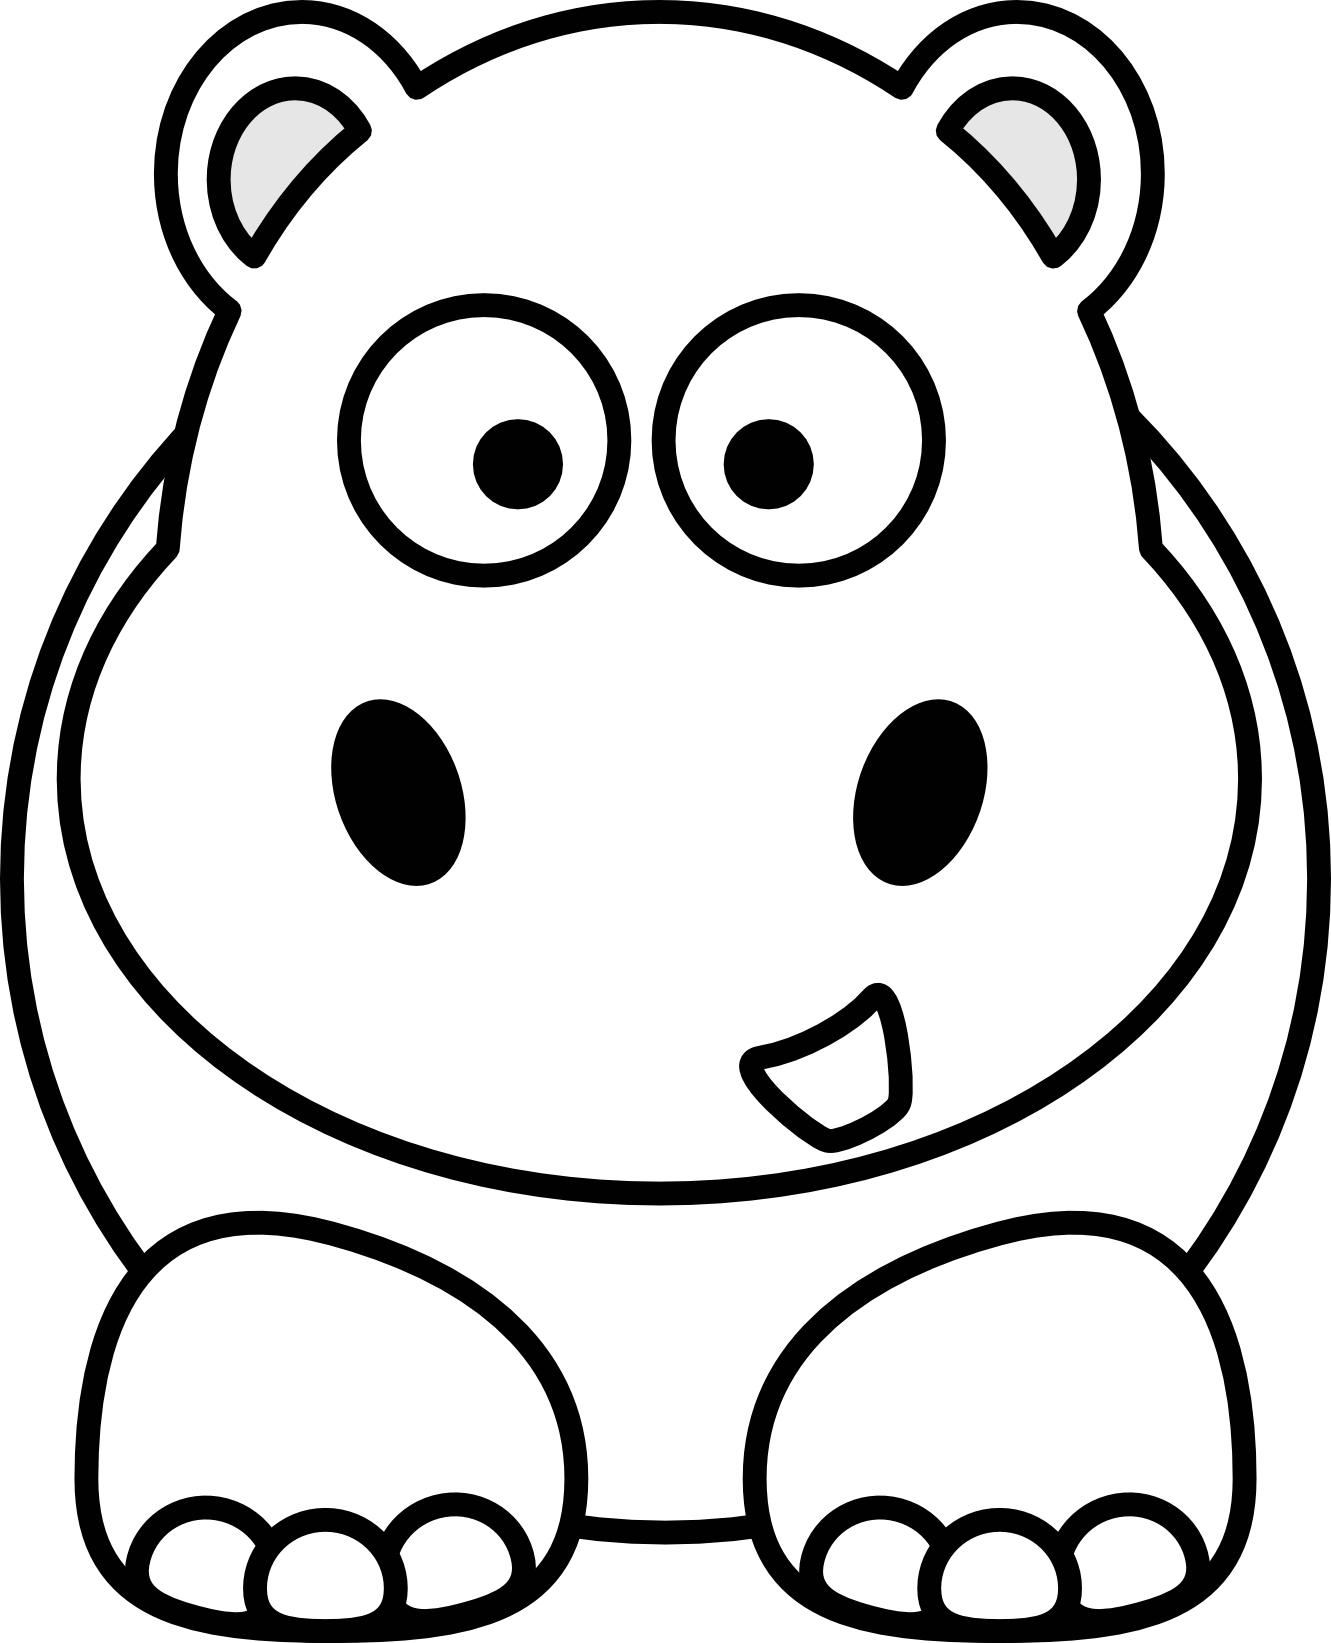 black and white animals drawing at getdrawings com free for rh getdrawings com clip art animals for noah's ark clip art animals pictures